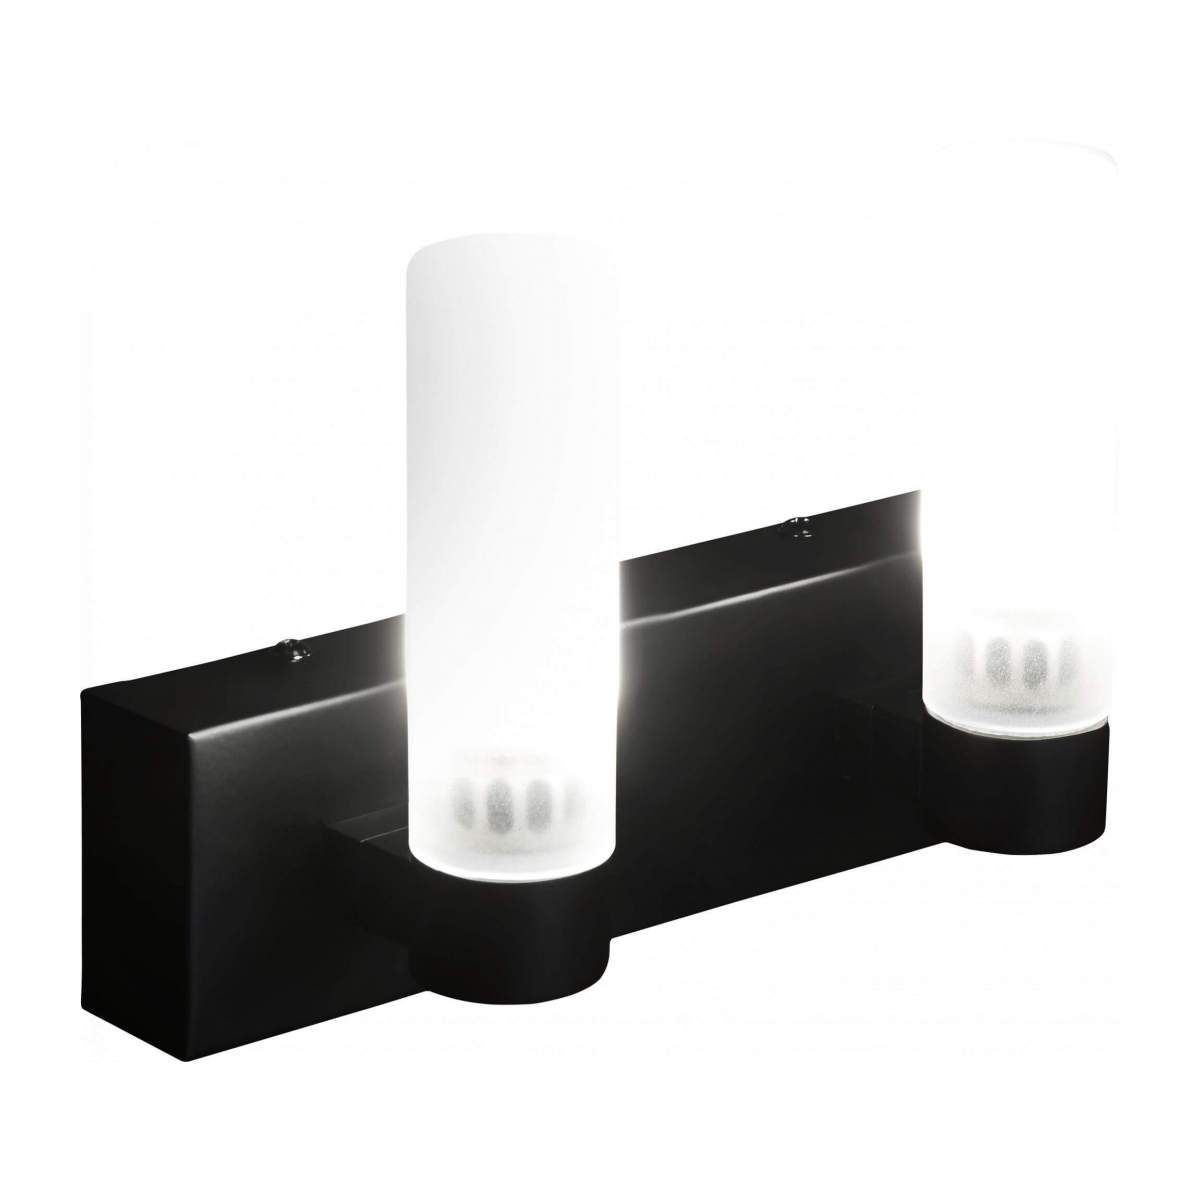 Applique LED norme IP44 matte - 2 lumières n°1